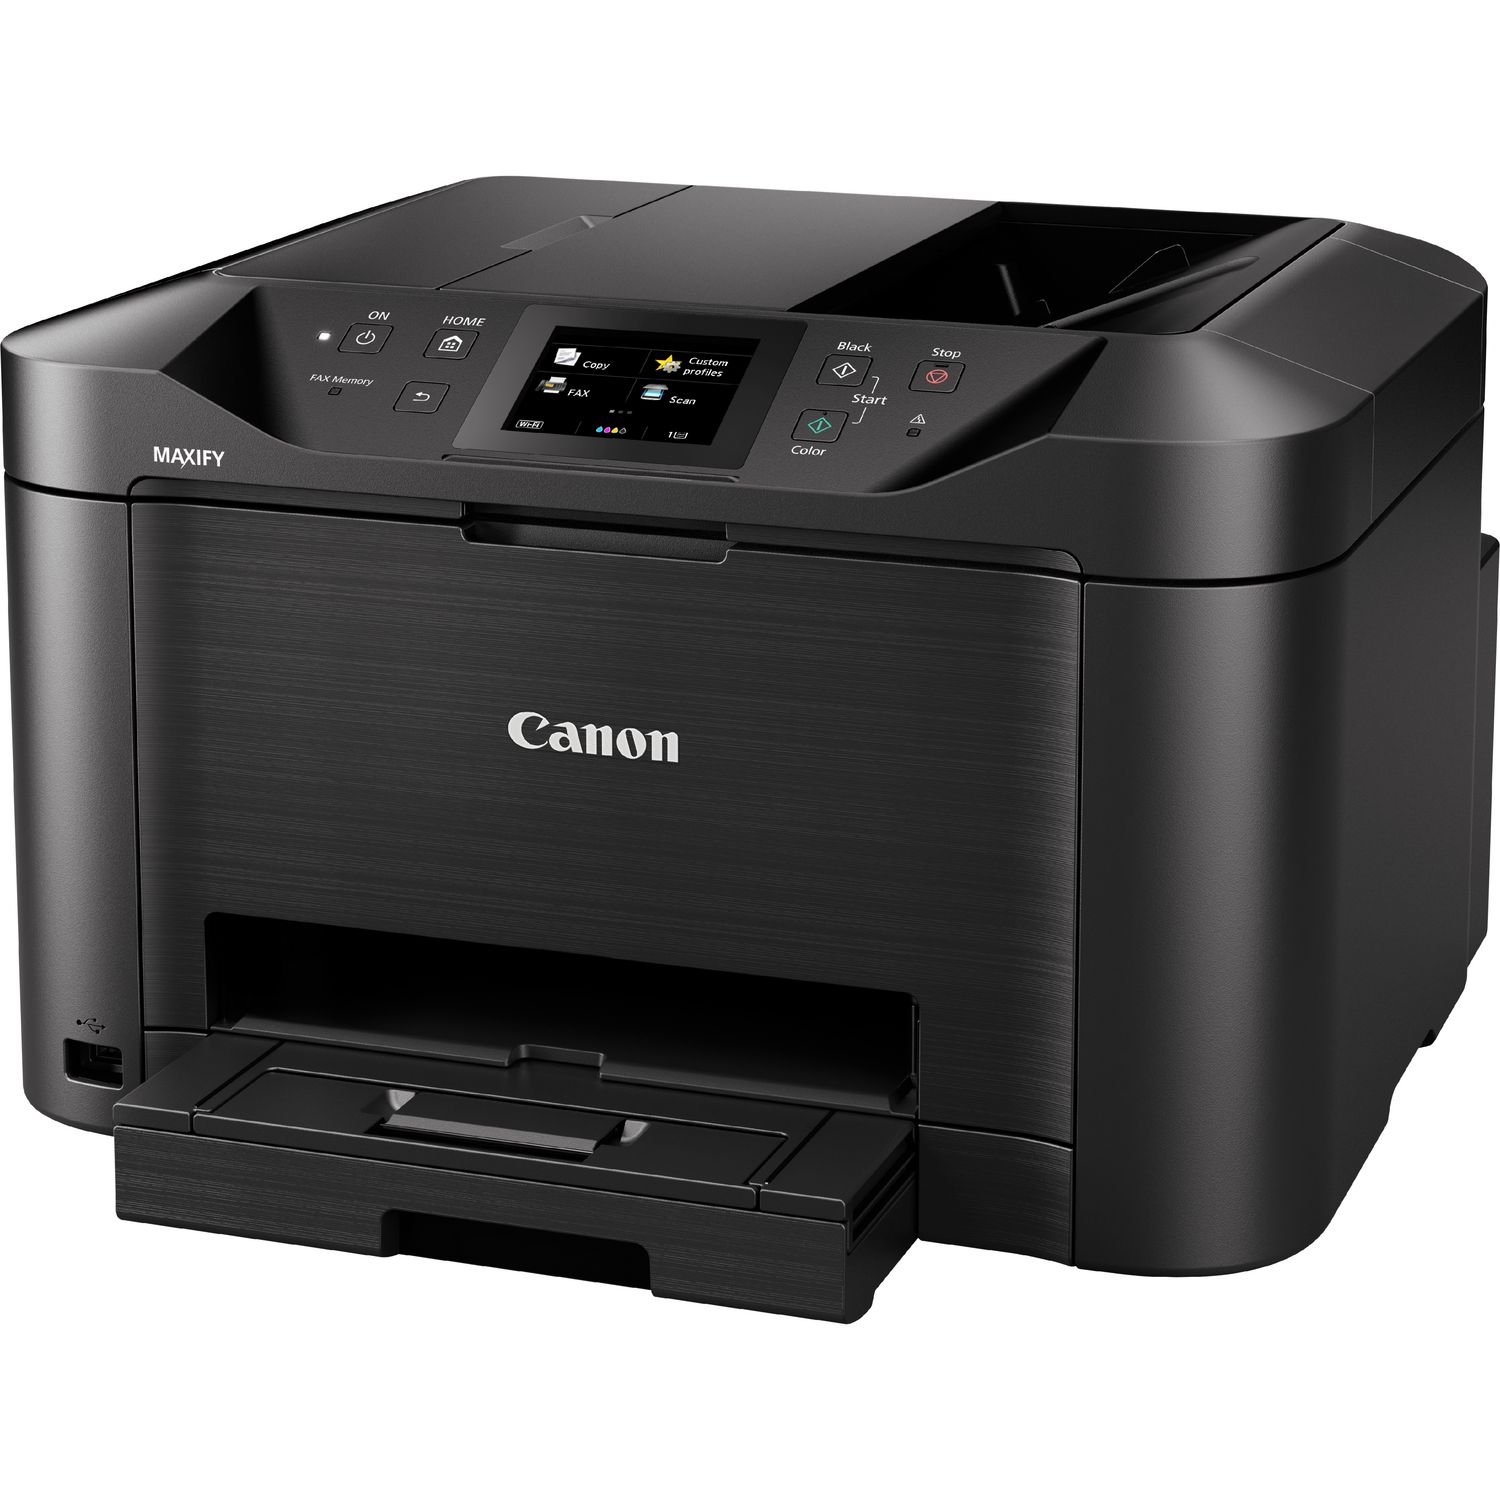 canon maxify mb5150 in wlan drucker canon deutschland shop. Black Bedroom Furniture Sets. Home Design Ideas